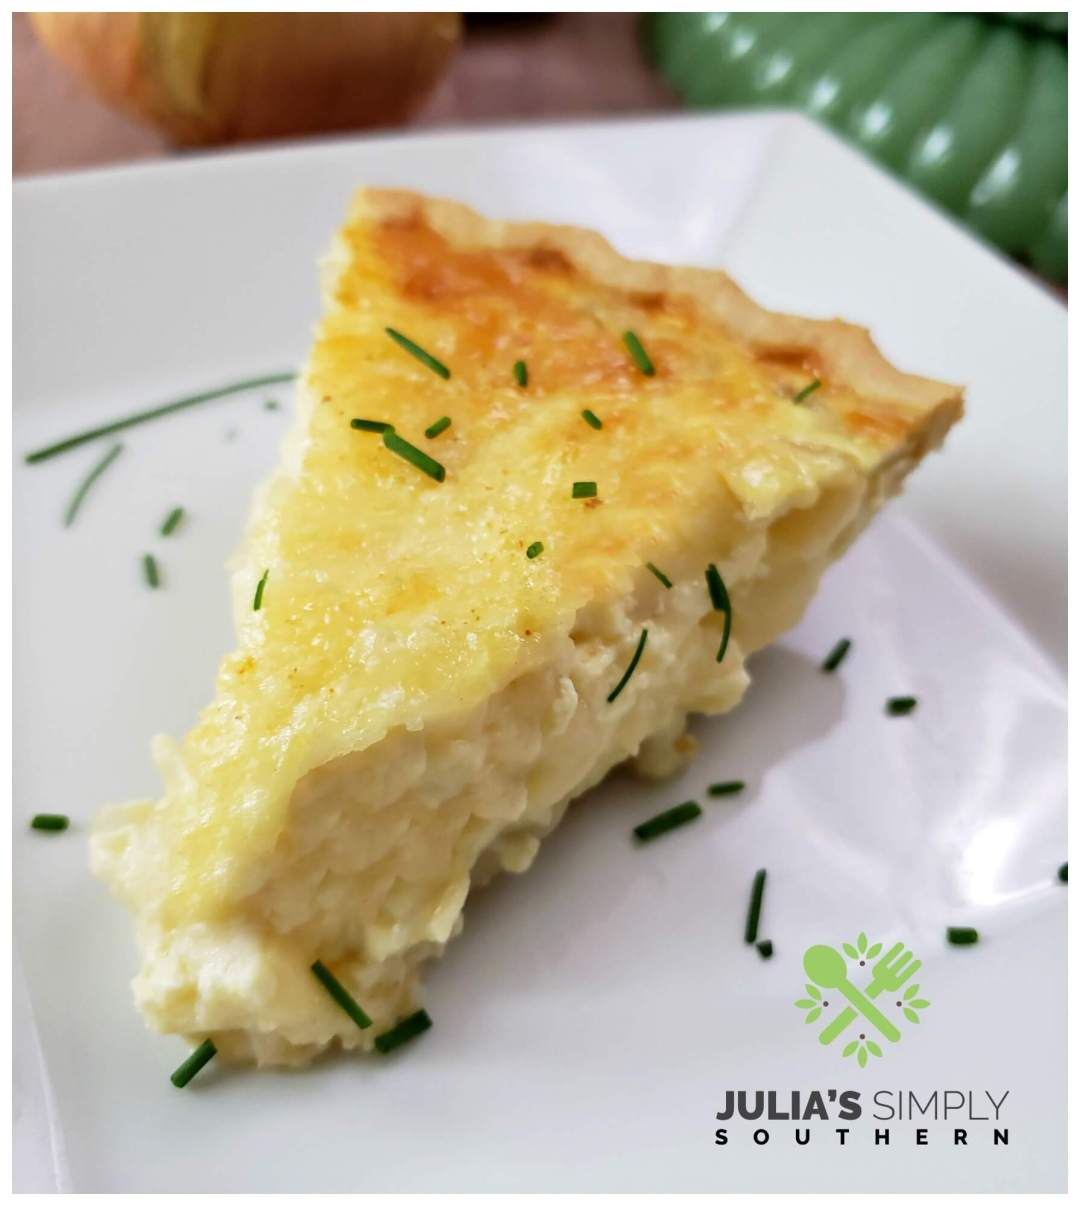 Creamy onion pie (quiche) made with Vidalia onions from Georgia and Swiss cheese on a white square plate.